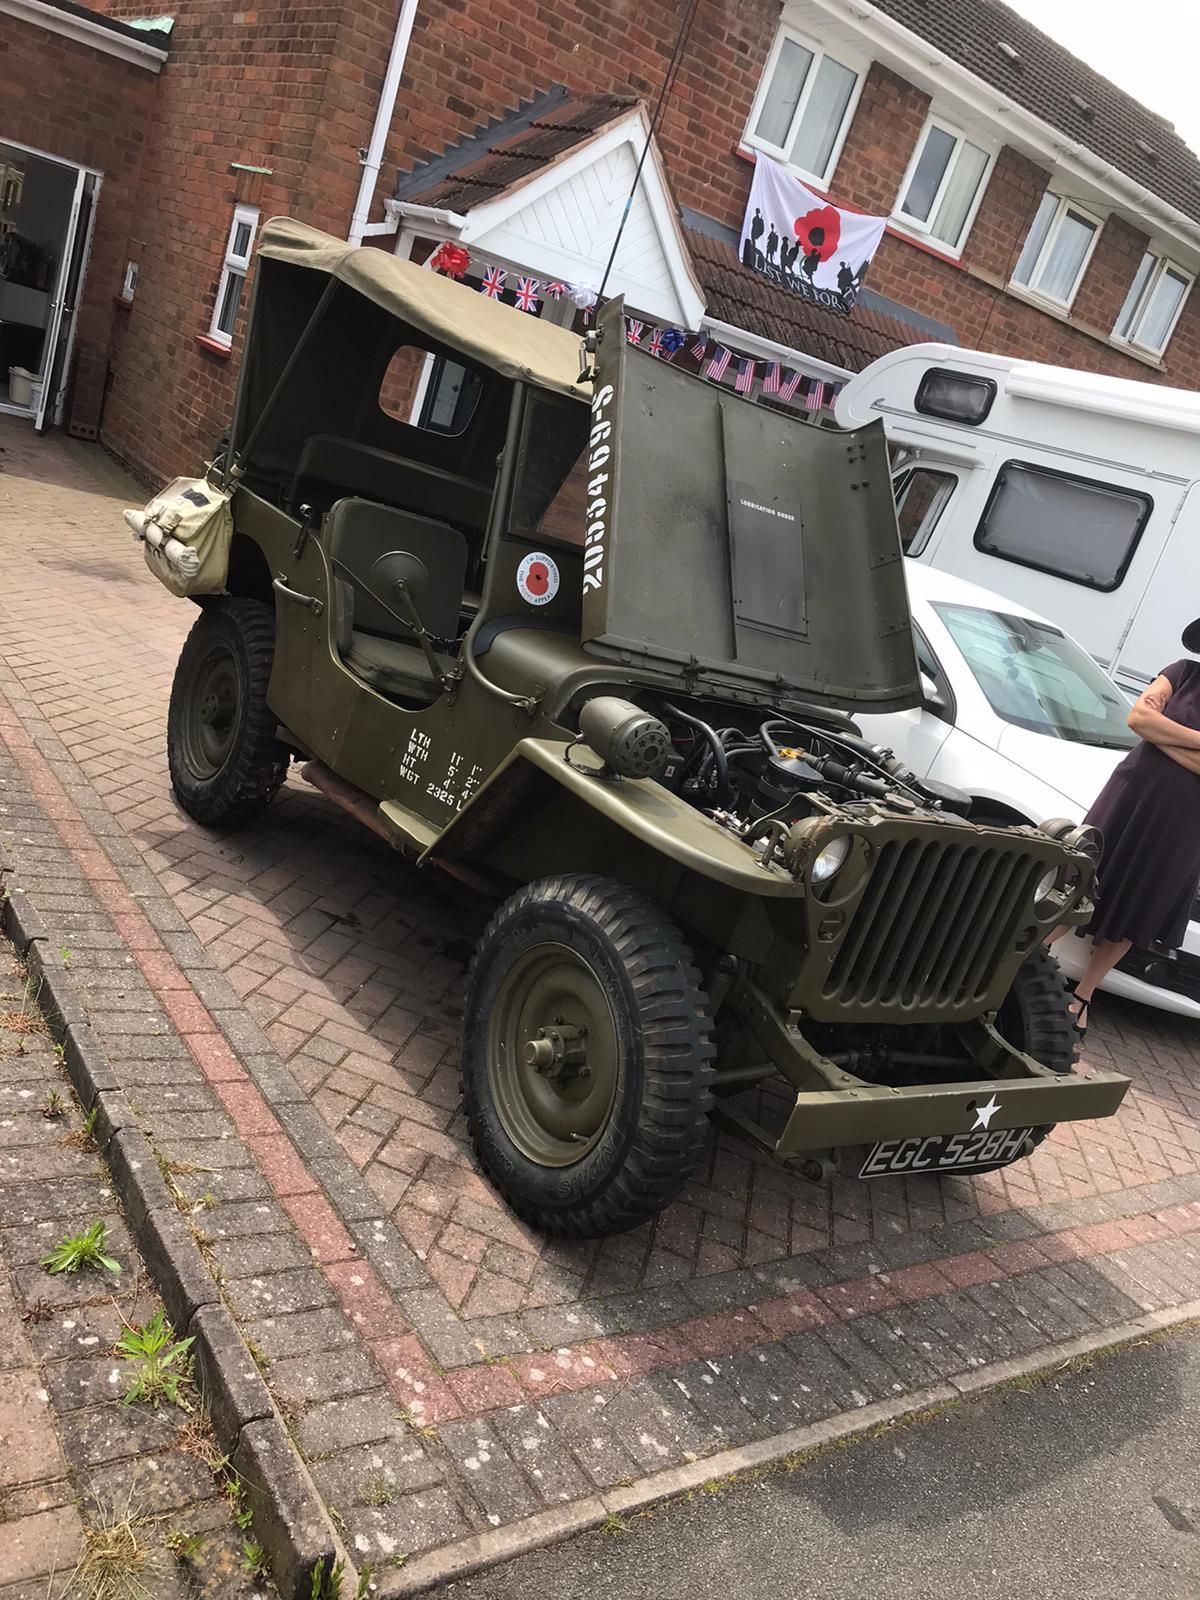 An army vehicle on display for VE Day on Redhurst Drive, Wolverhampton. Picture from: Joseph Richards